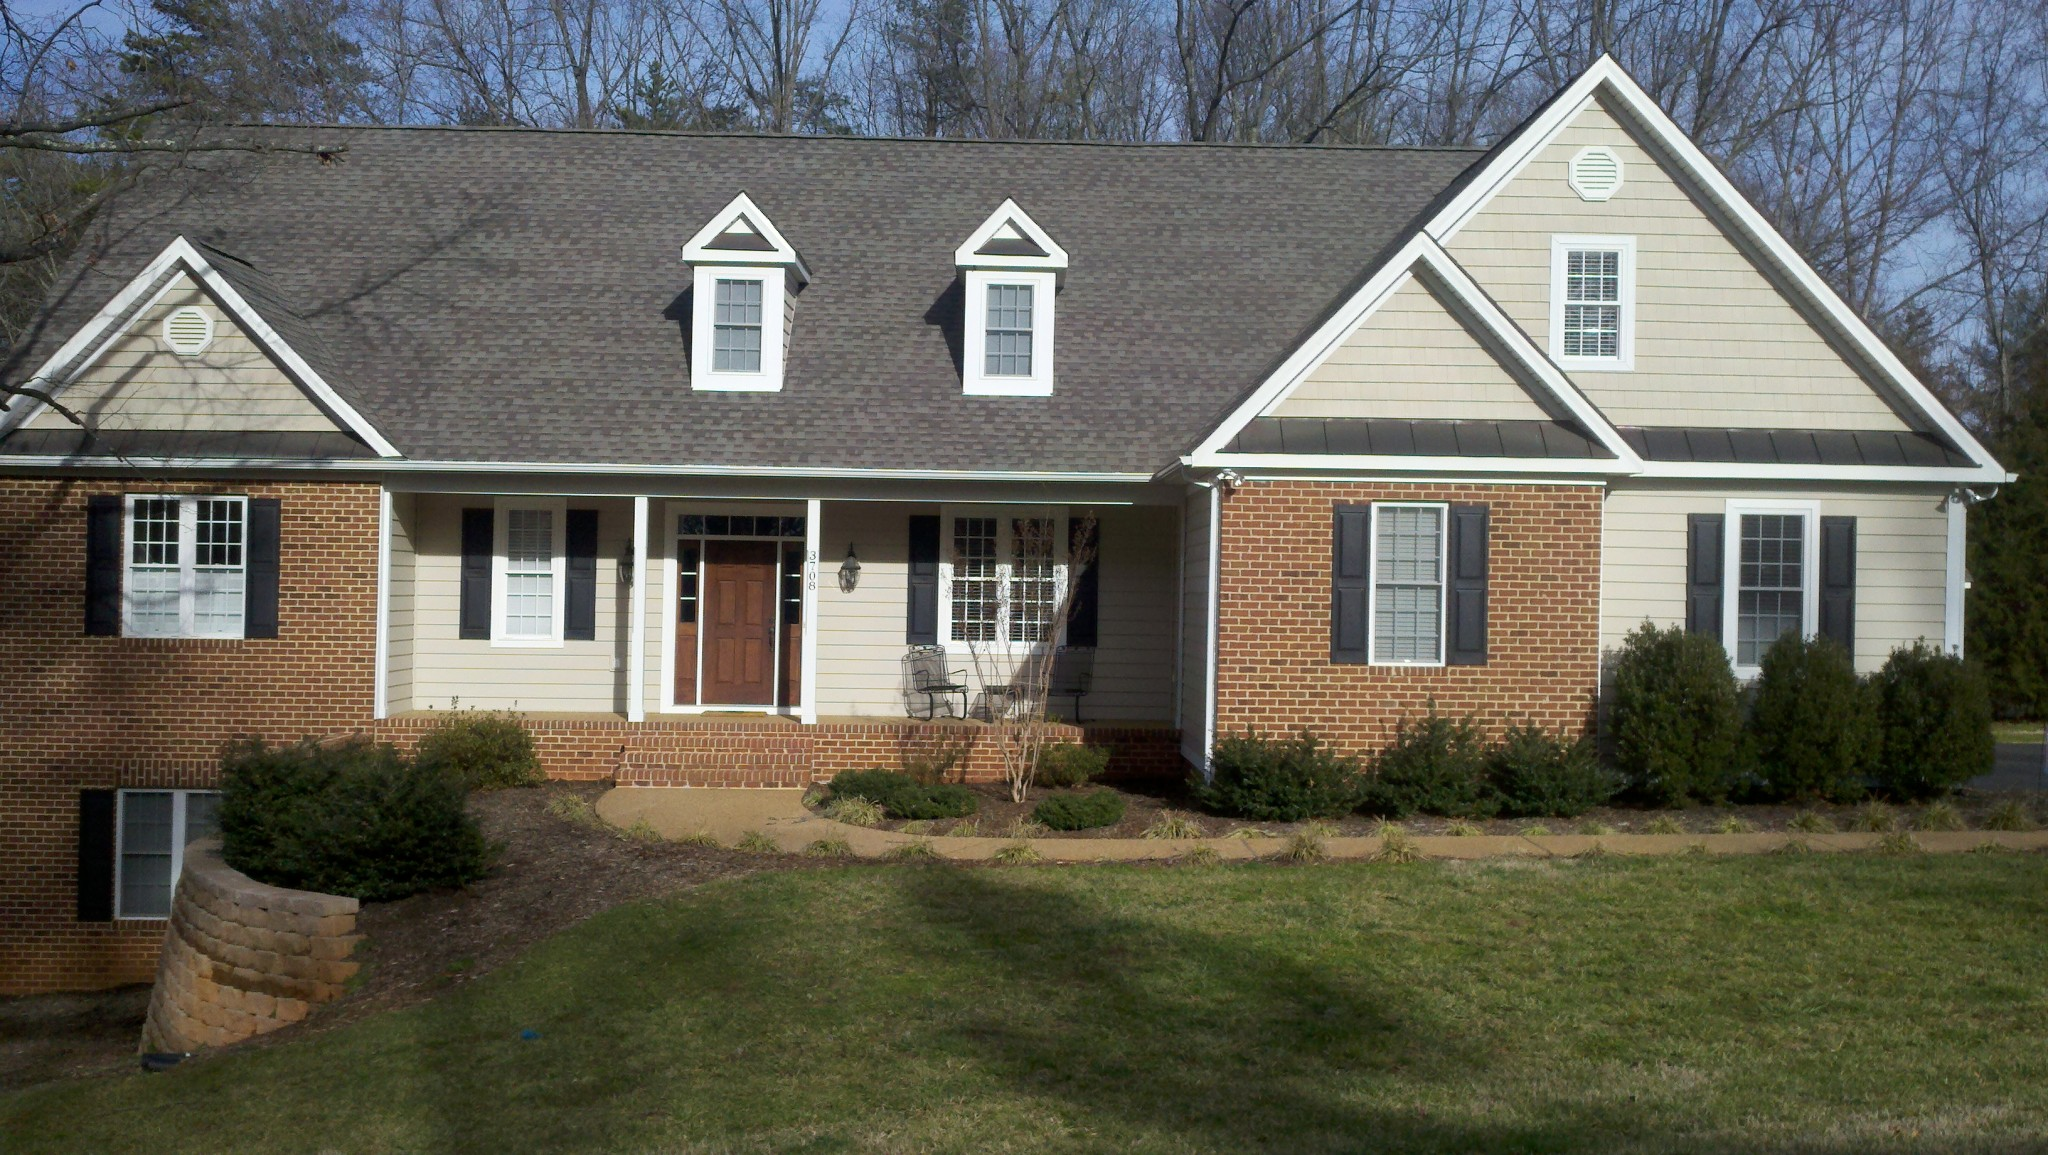 Gallery siding albemarle siding and window for House siding reviews